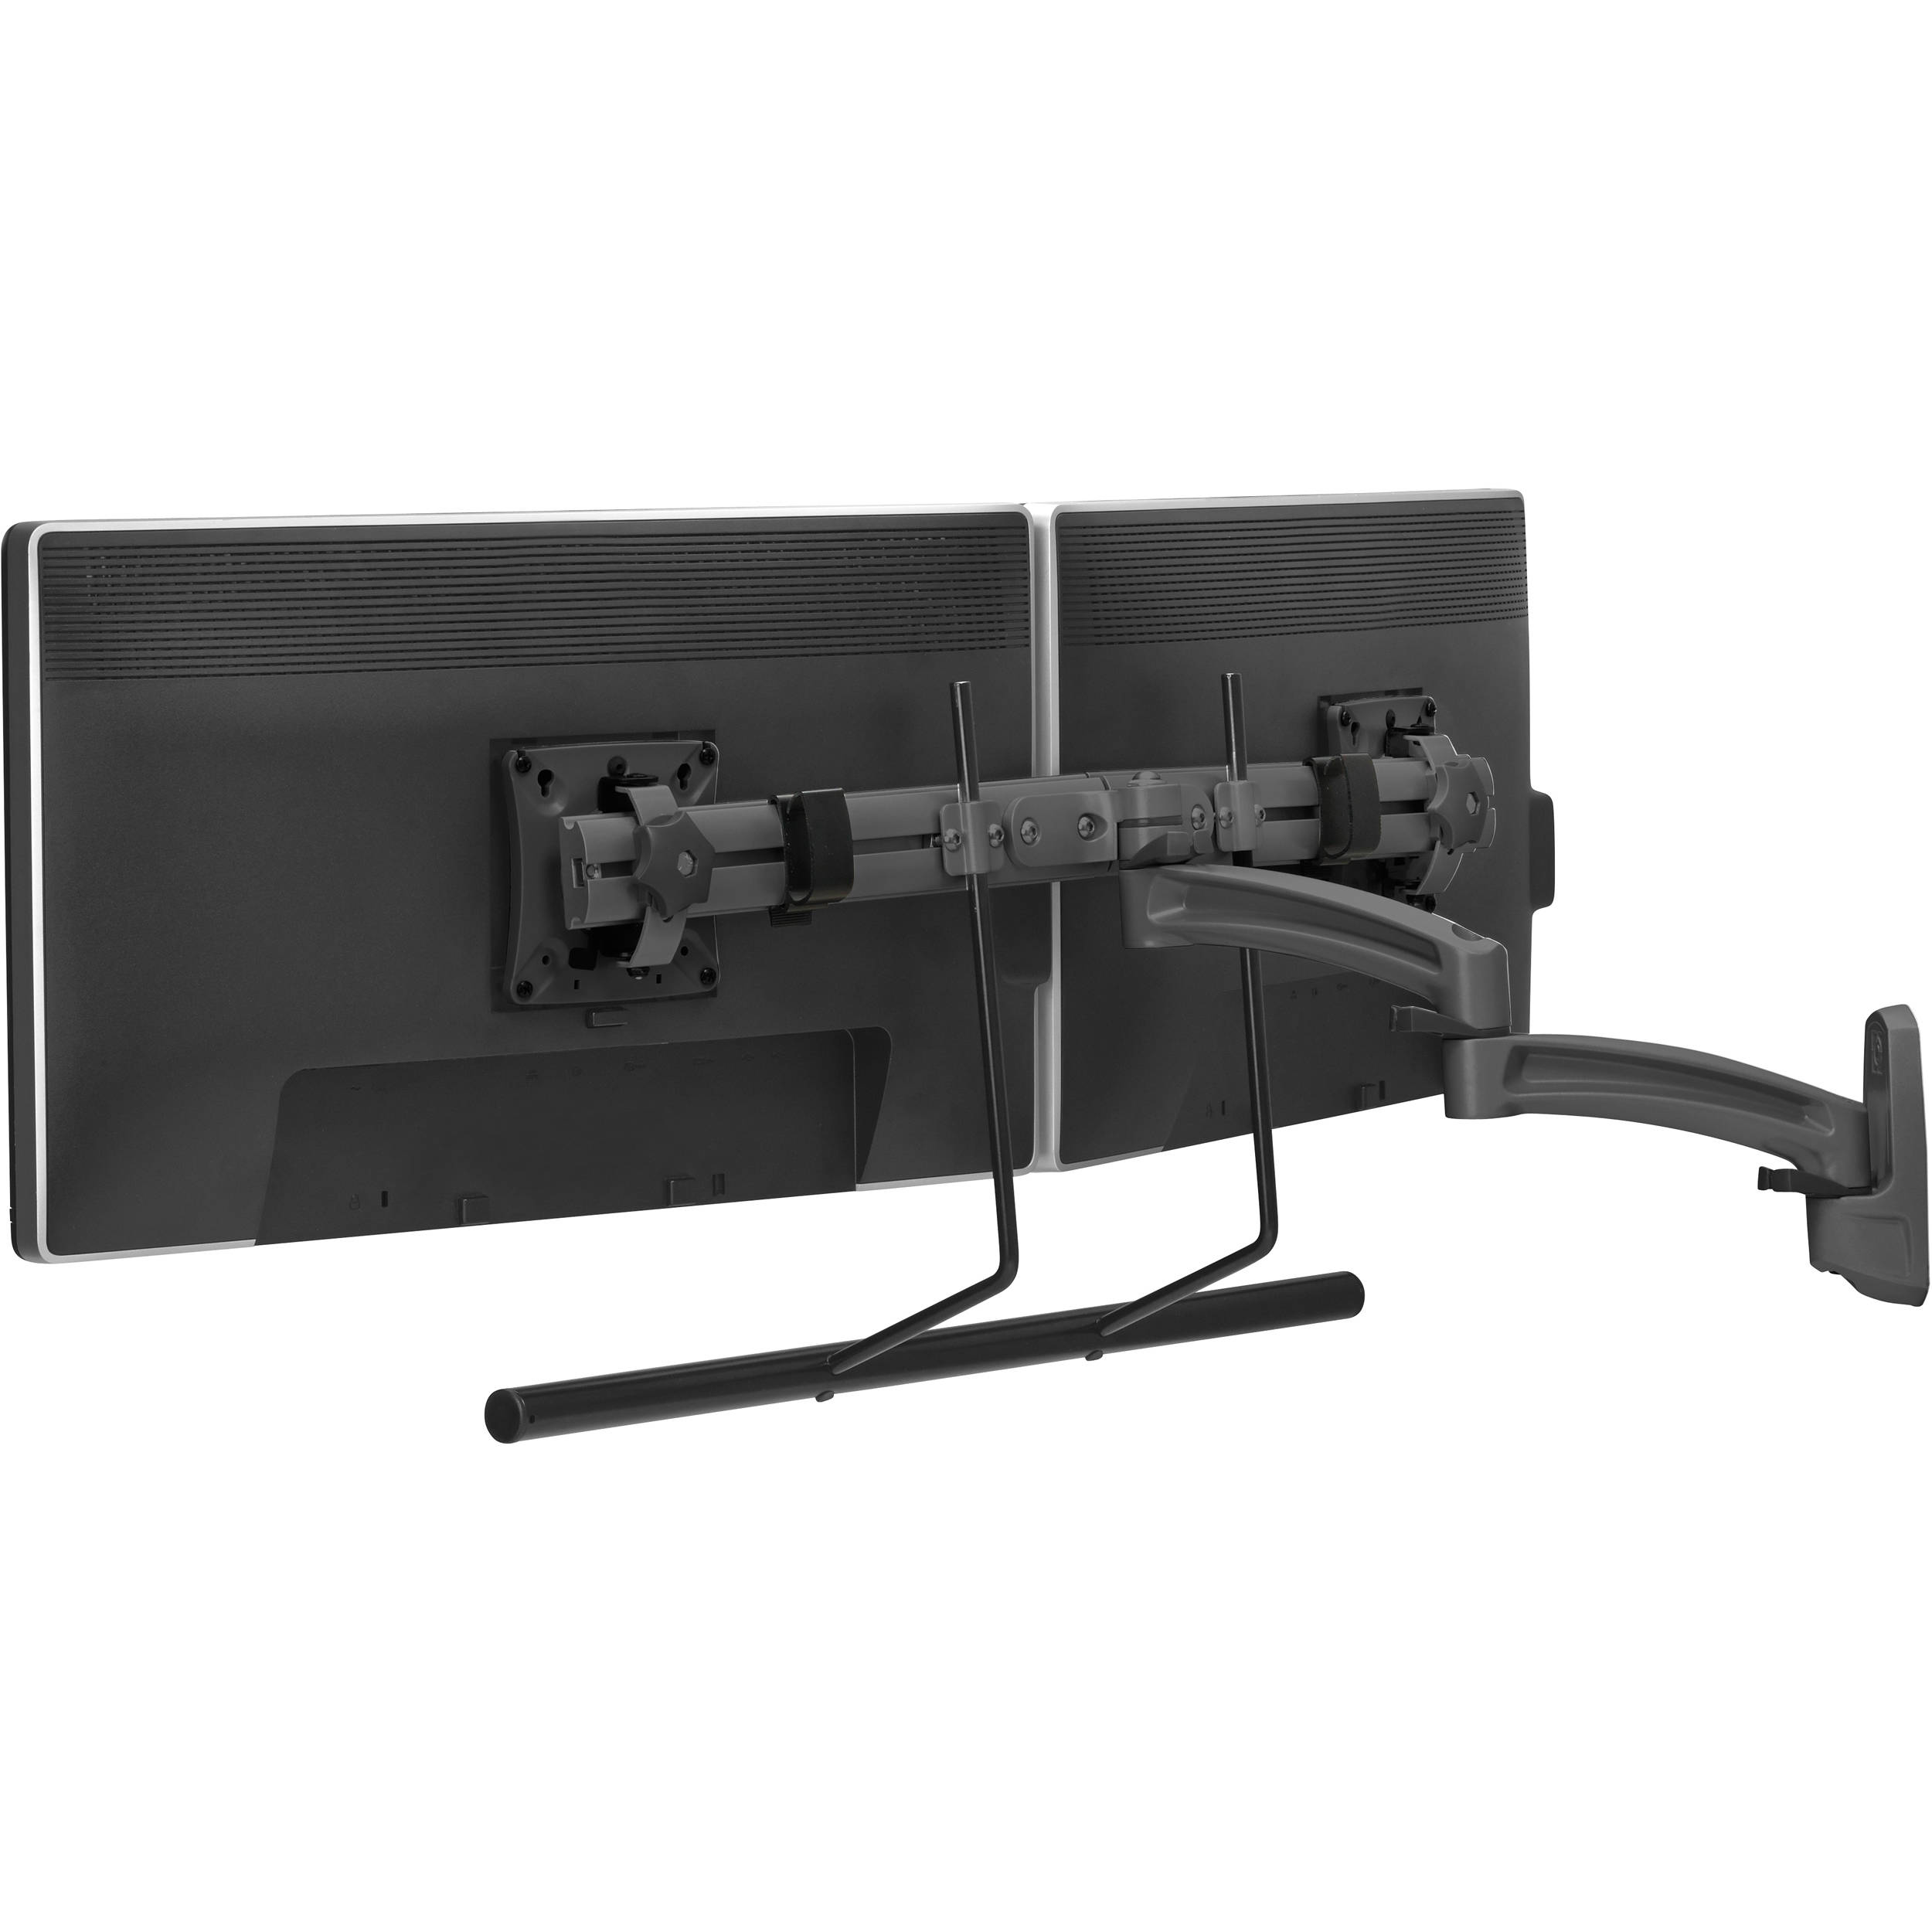 Dual Wall Dual Monitor Wall Mount